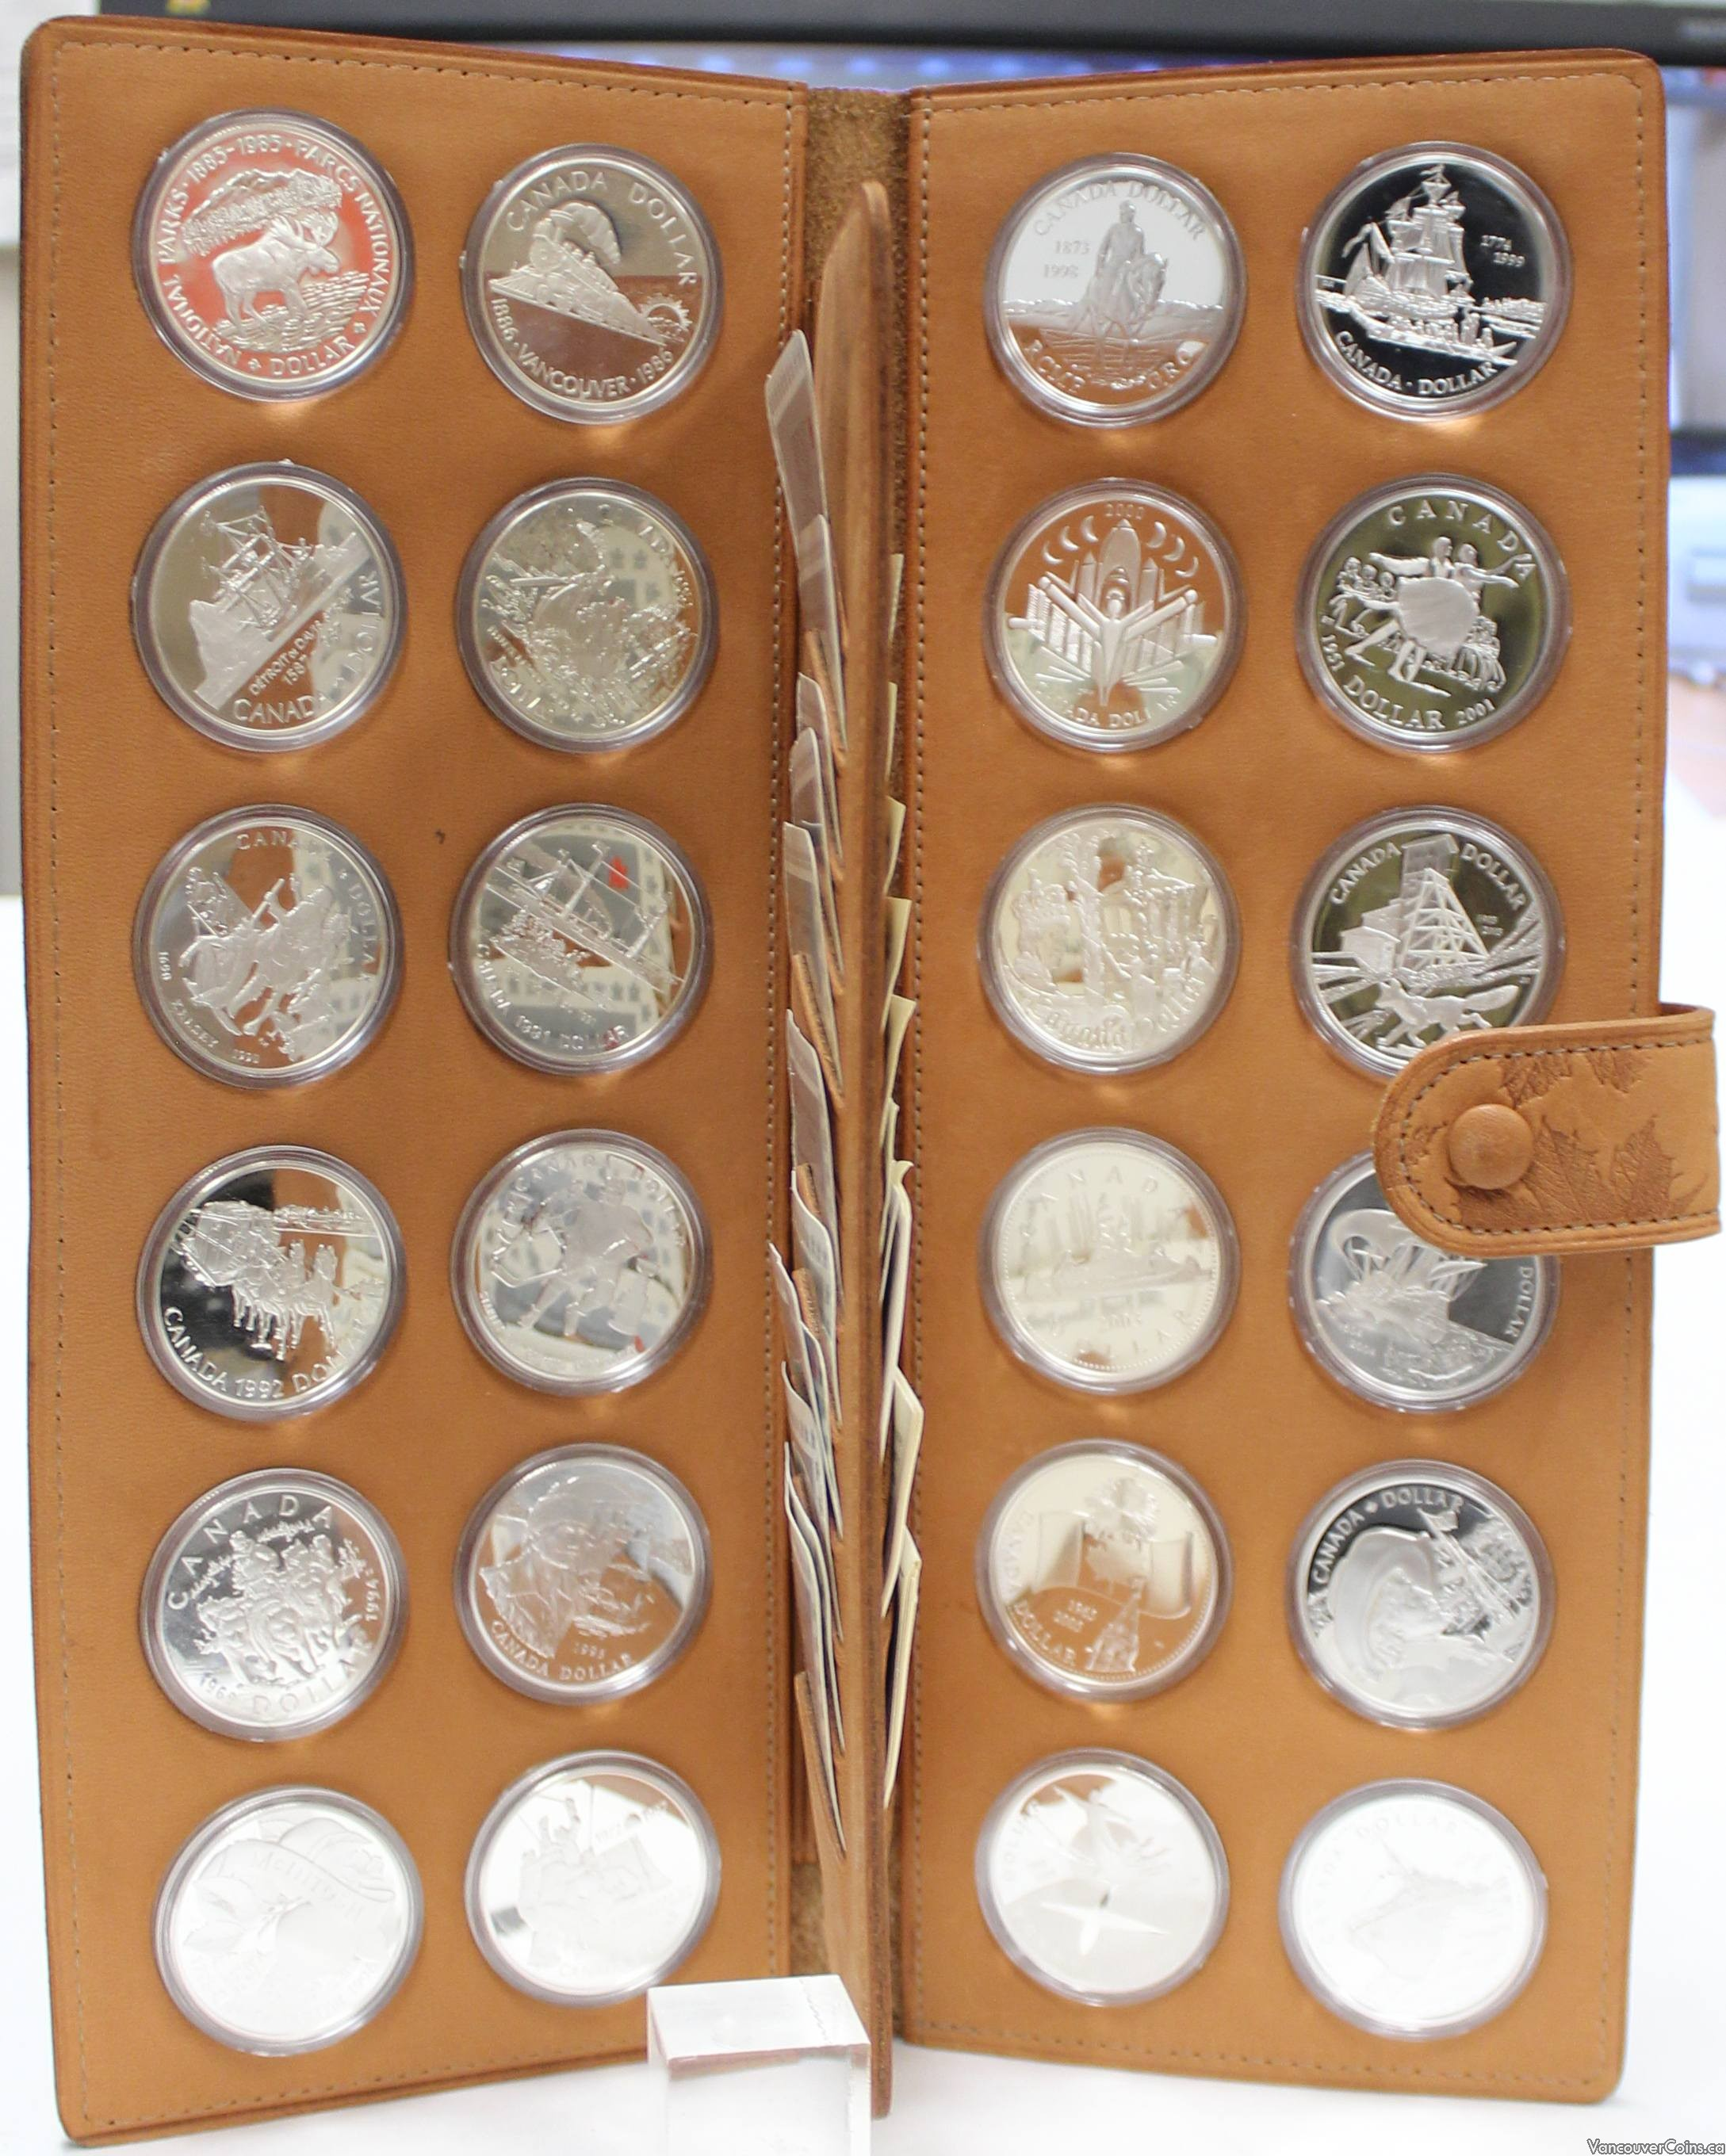 24x Canadian Proof Silver $1 Dollars 1985 to 2010 In RCM Leather Holder